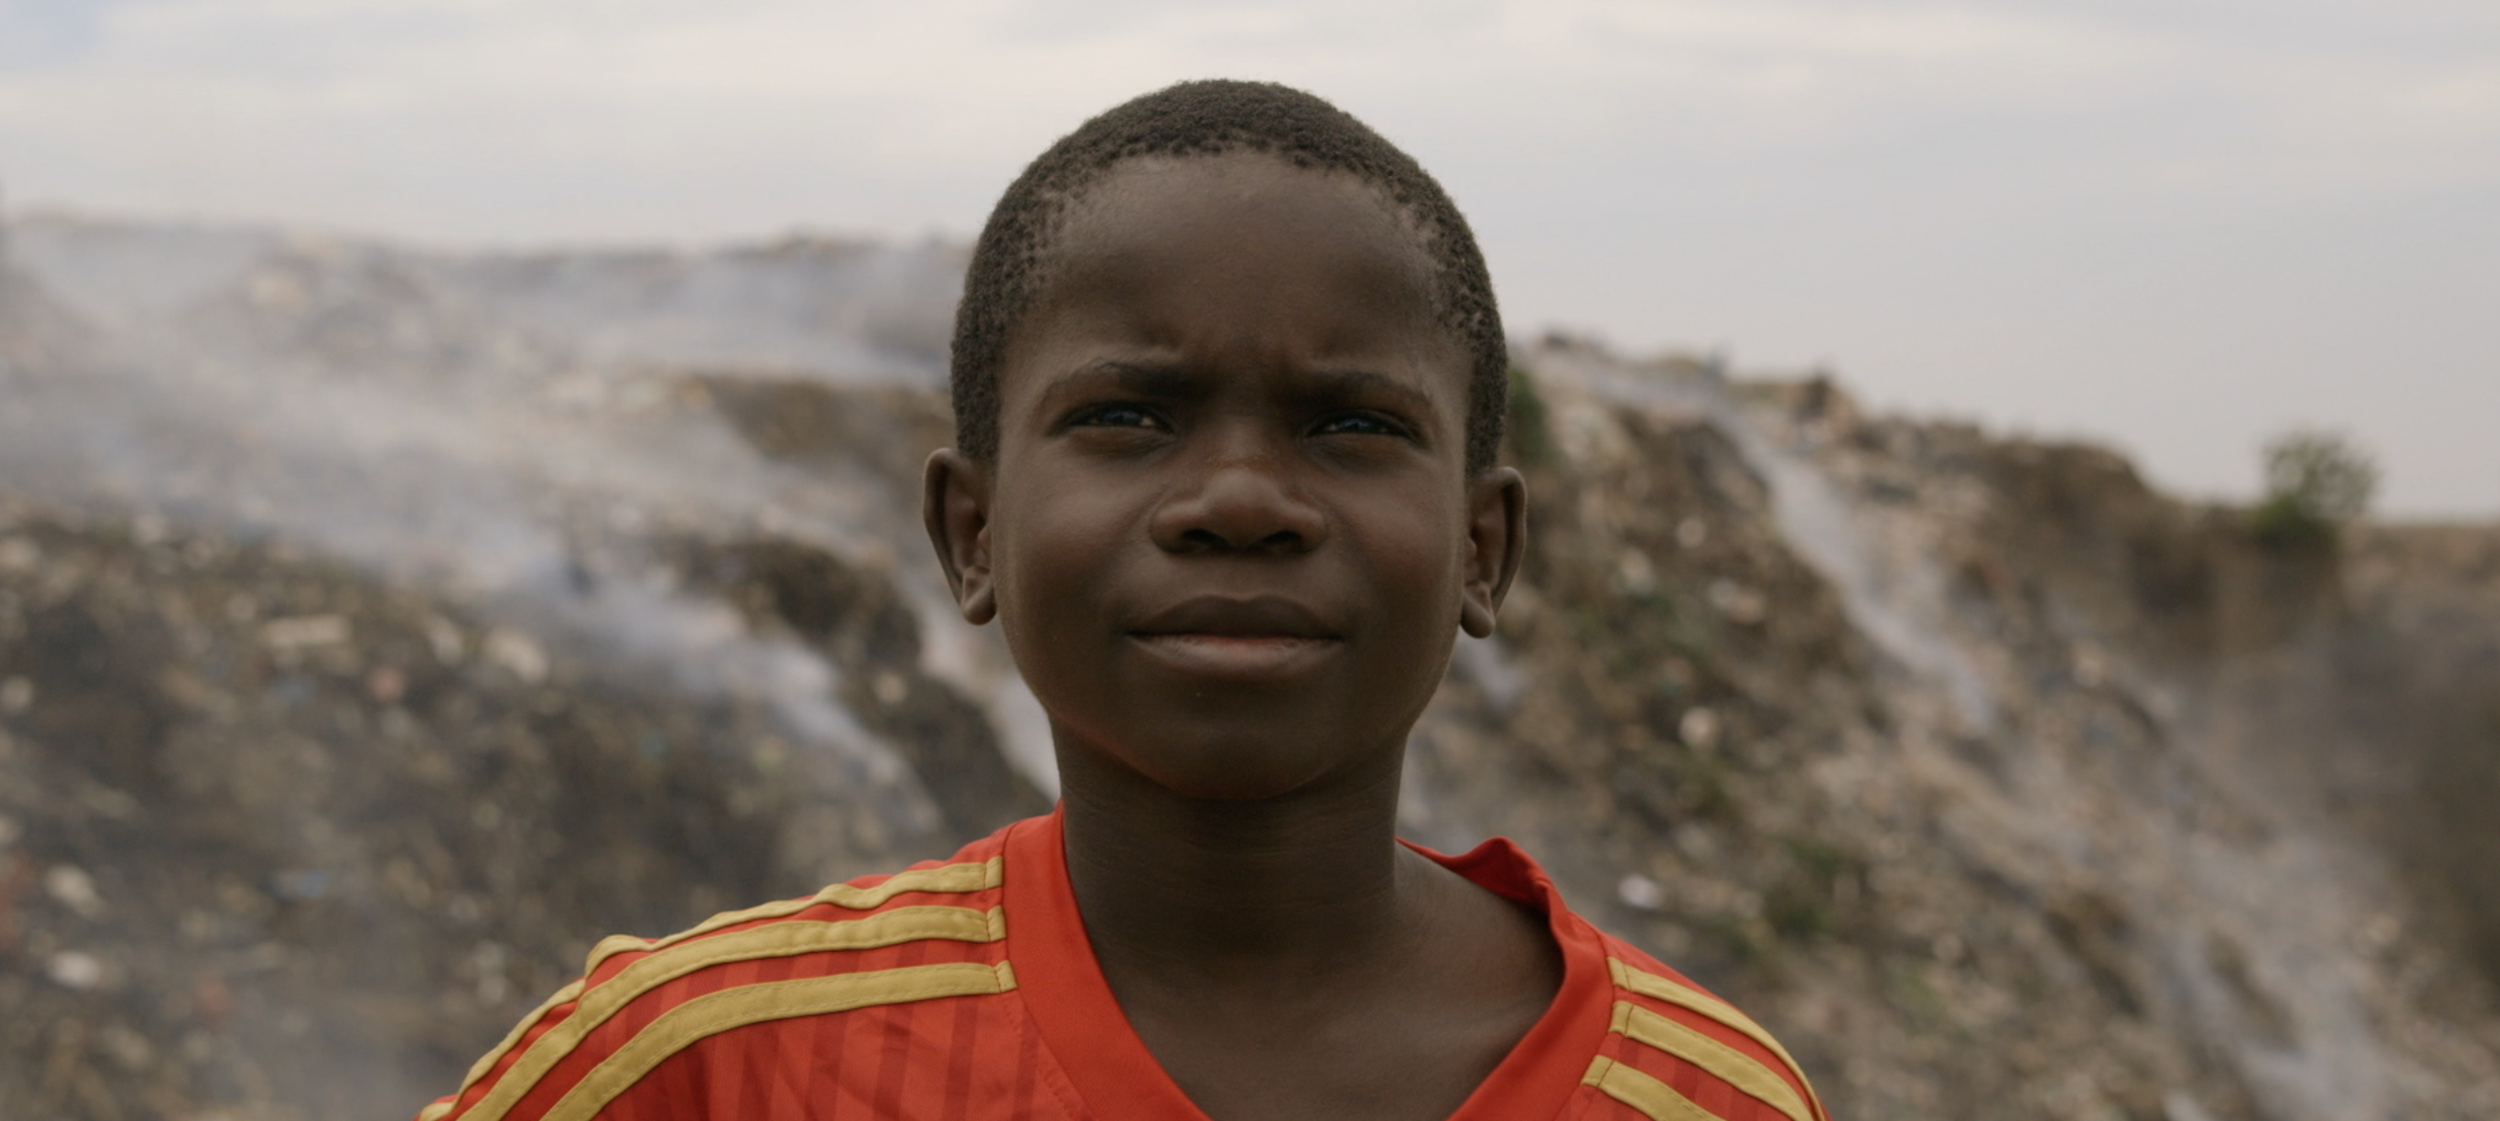 The Other Kids (2016)   directed by Pablo de la Chica   Running Time:  85 minutes   Genre:  Documentary Feature  Mubiru Reagan's life depends on a football scholarship. His dream is to emulate his idol, Fernando Torres, and be able to score a goal that will take his country, Uganda, to their first African Nations Cup. But above all he wants to study.    A story about childhood, football and dreams.                                                +Info            VOD:   MOVISTAR +    AMAZON